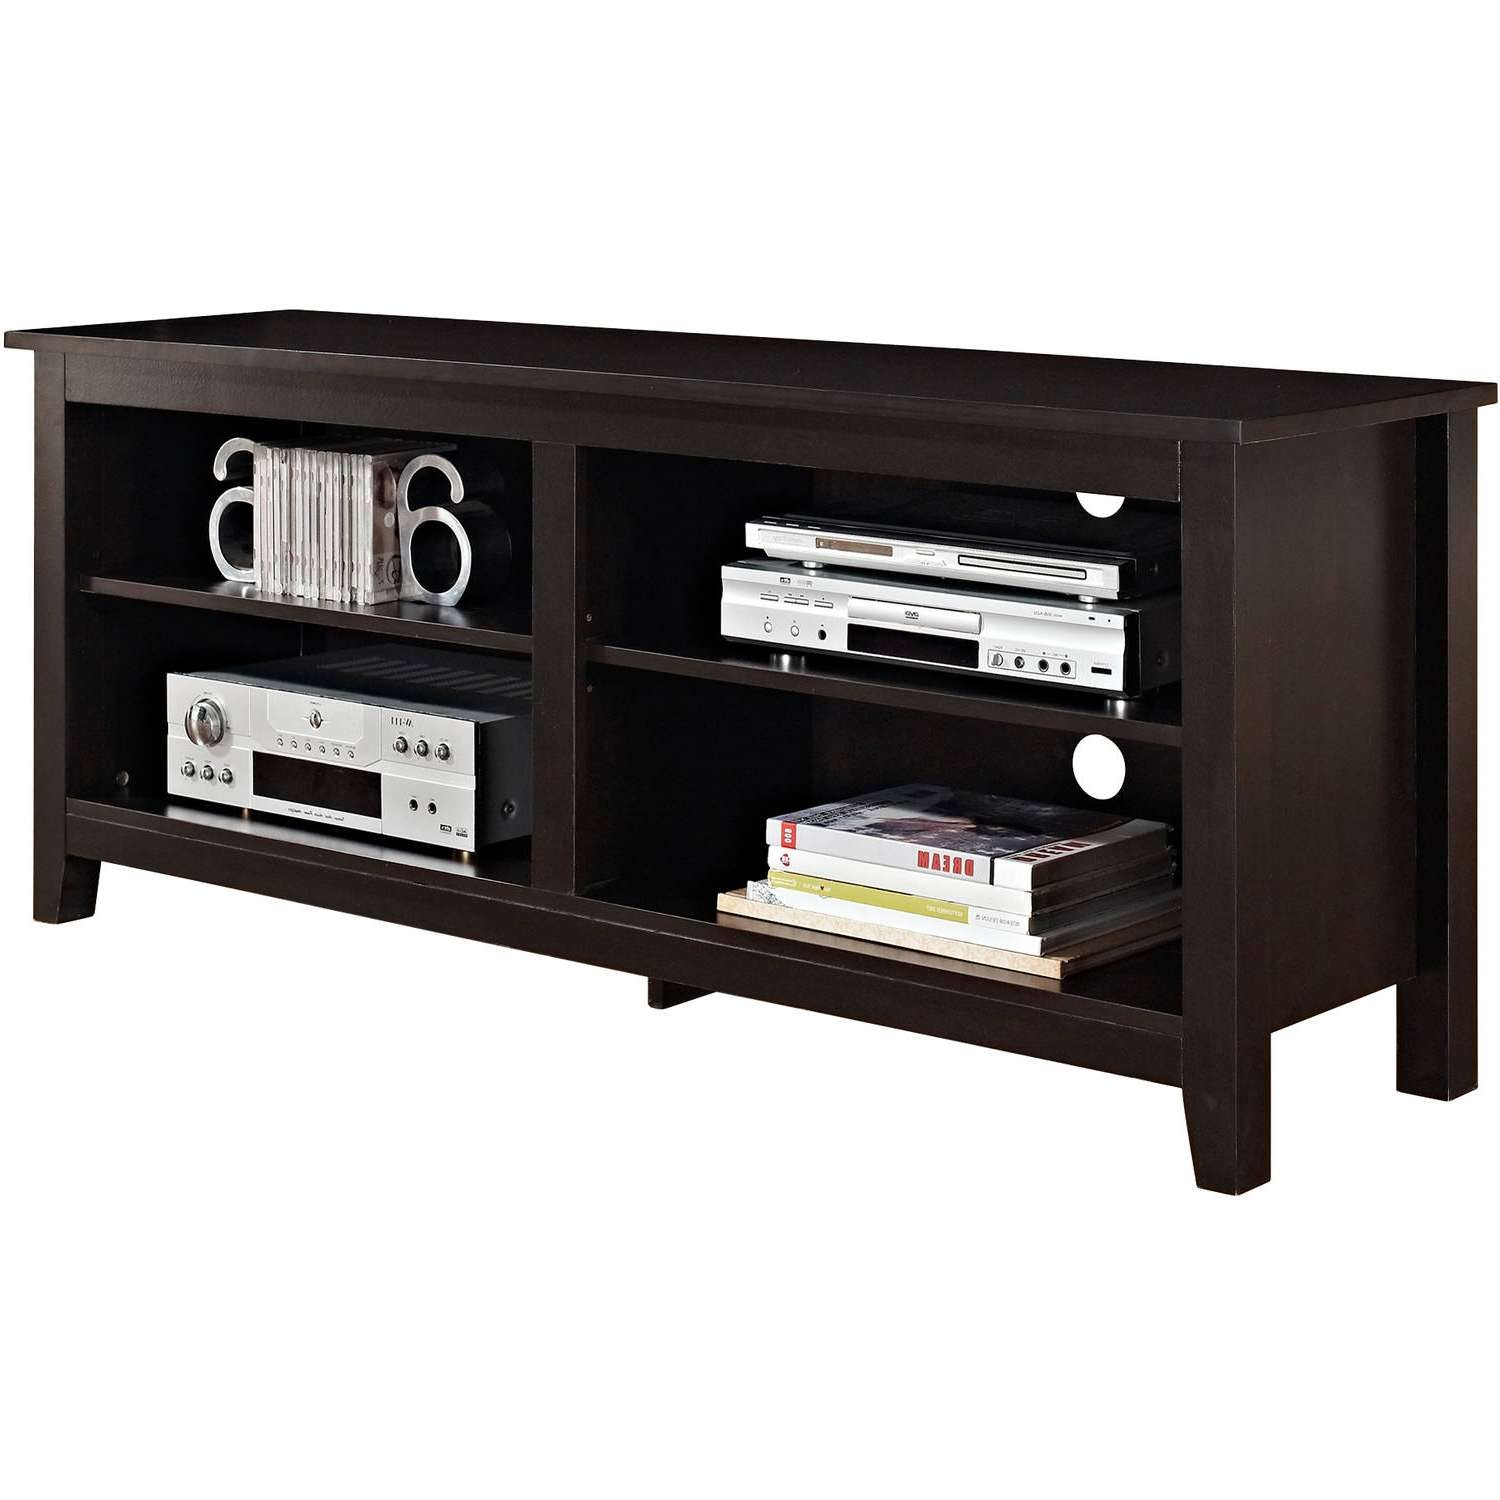 "Wood Tv Stand For Tvs Up To 60"", Espresso – Walmart Regarding Wood Tv Stands (View 11 of 15)"